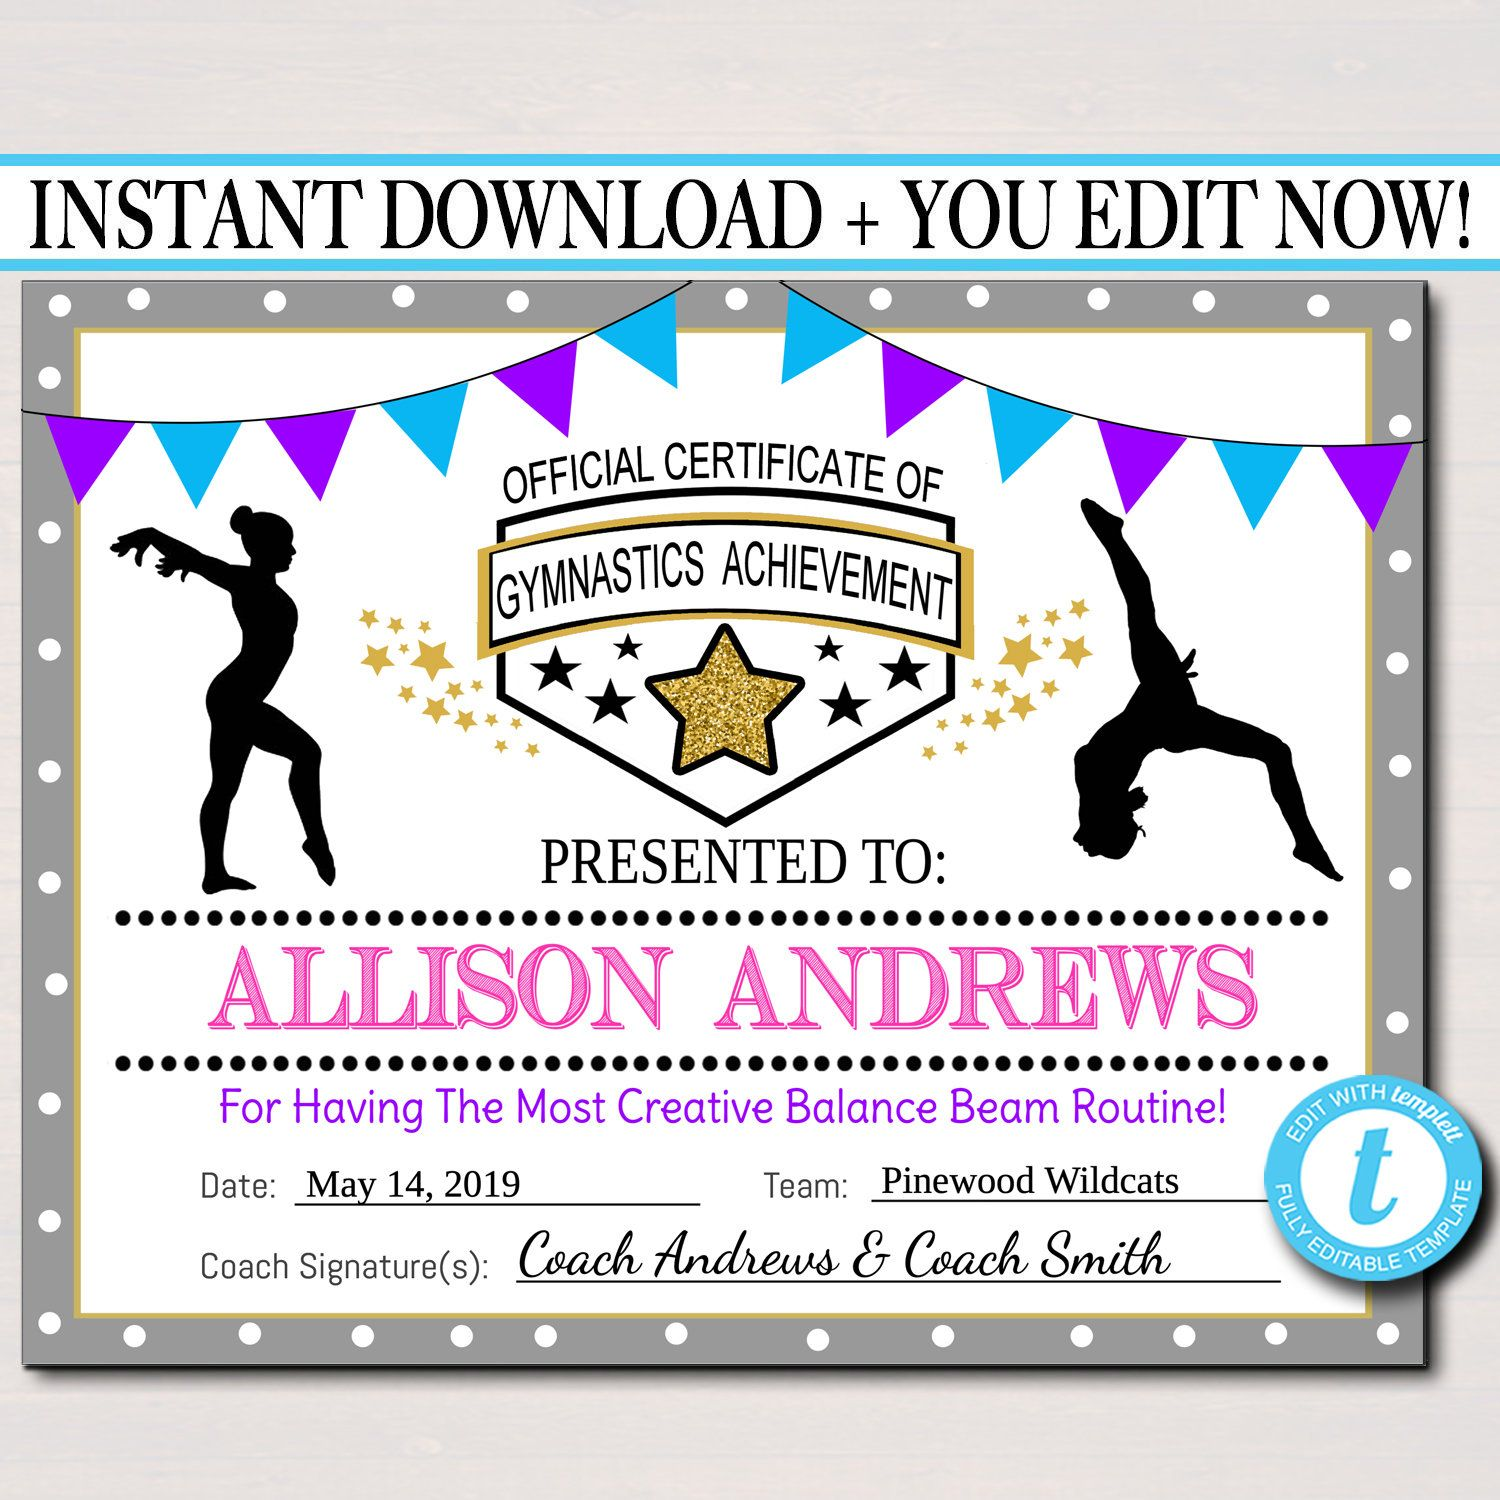 gymnastics certificates certificate printable editable awards team gymnast etsy instant award template gift templates boys gym sold events achievement printables